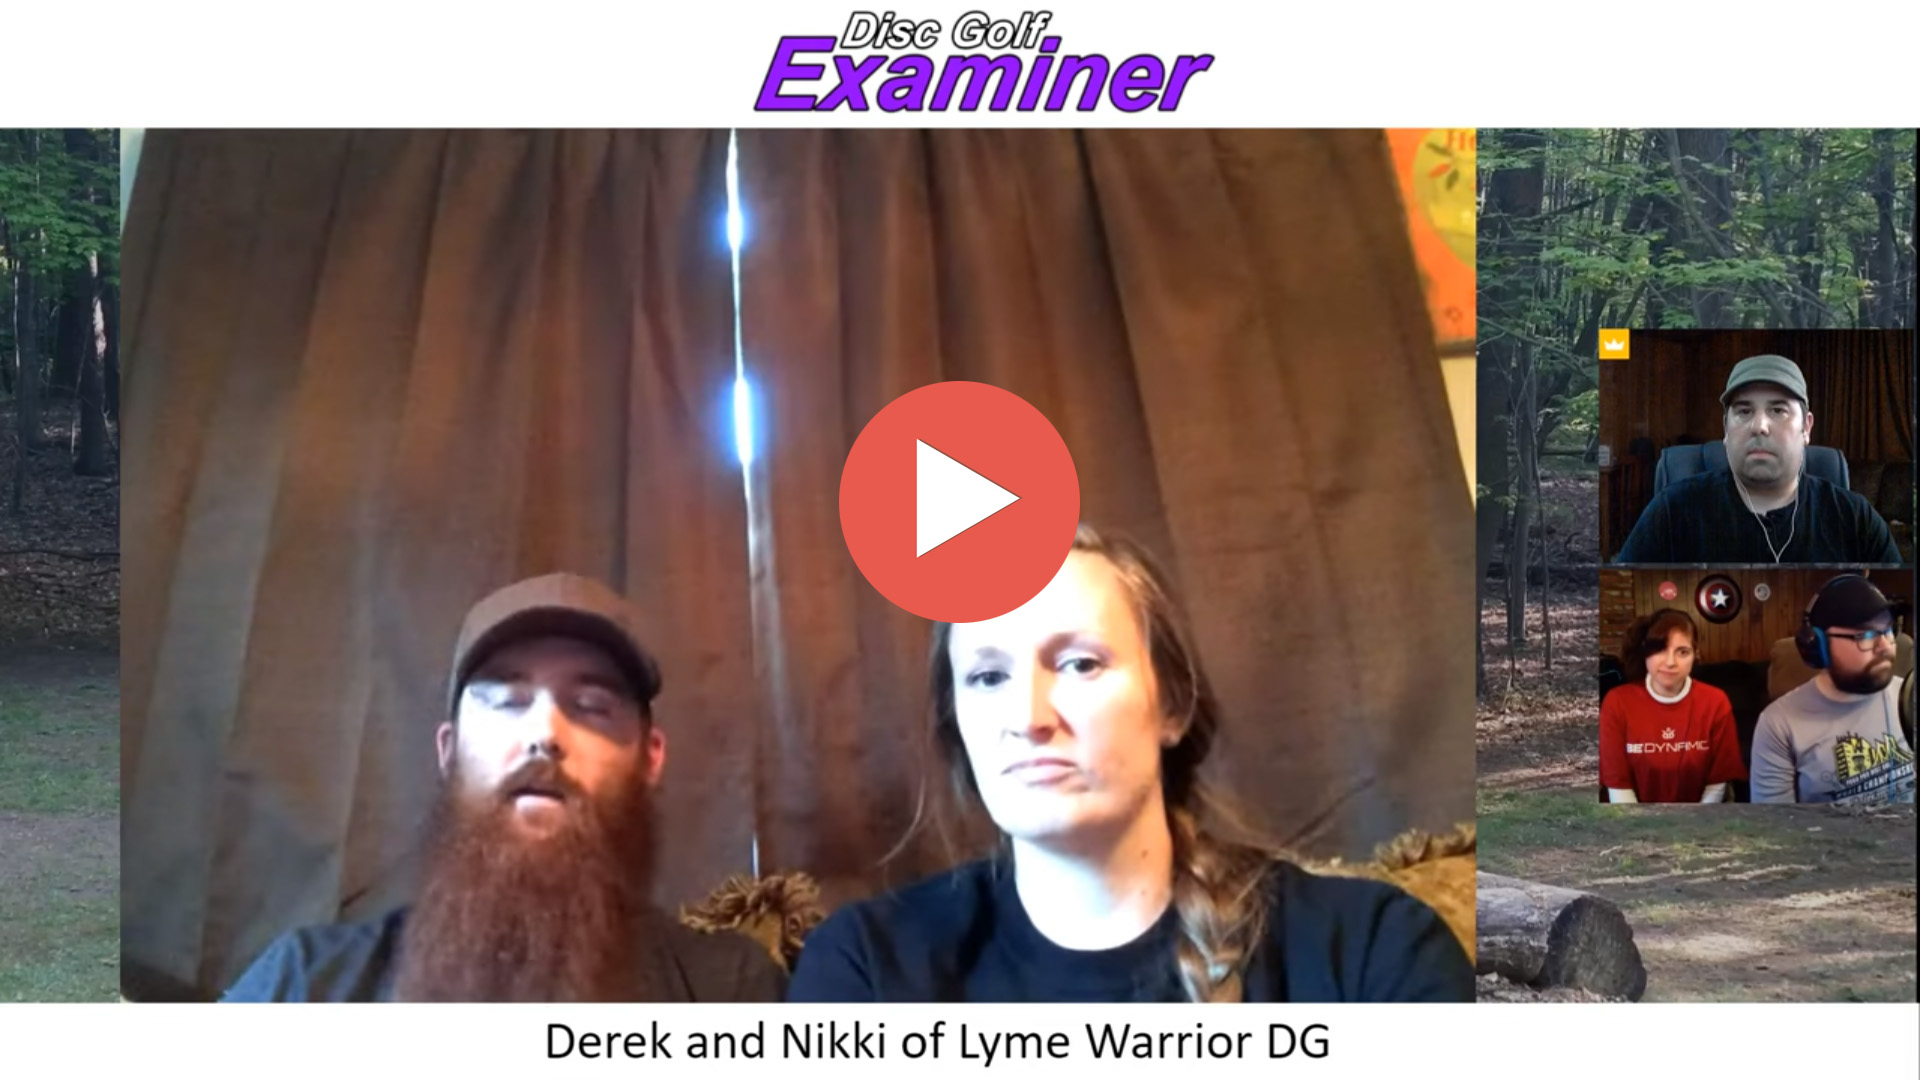 Derek and Nikki of Lyme Warrior DG